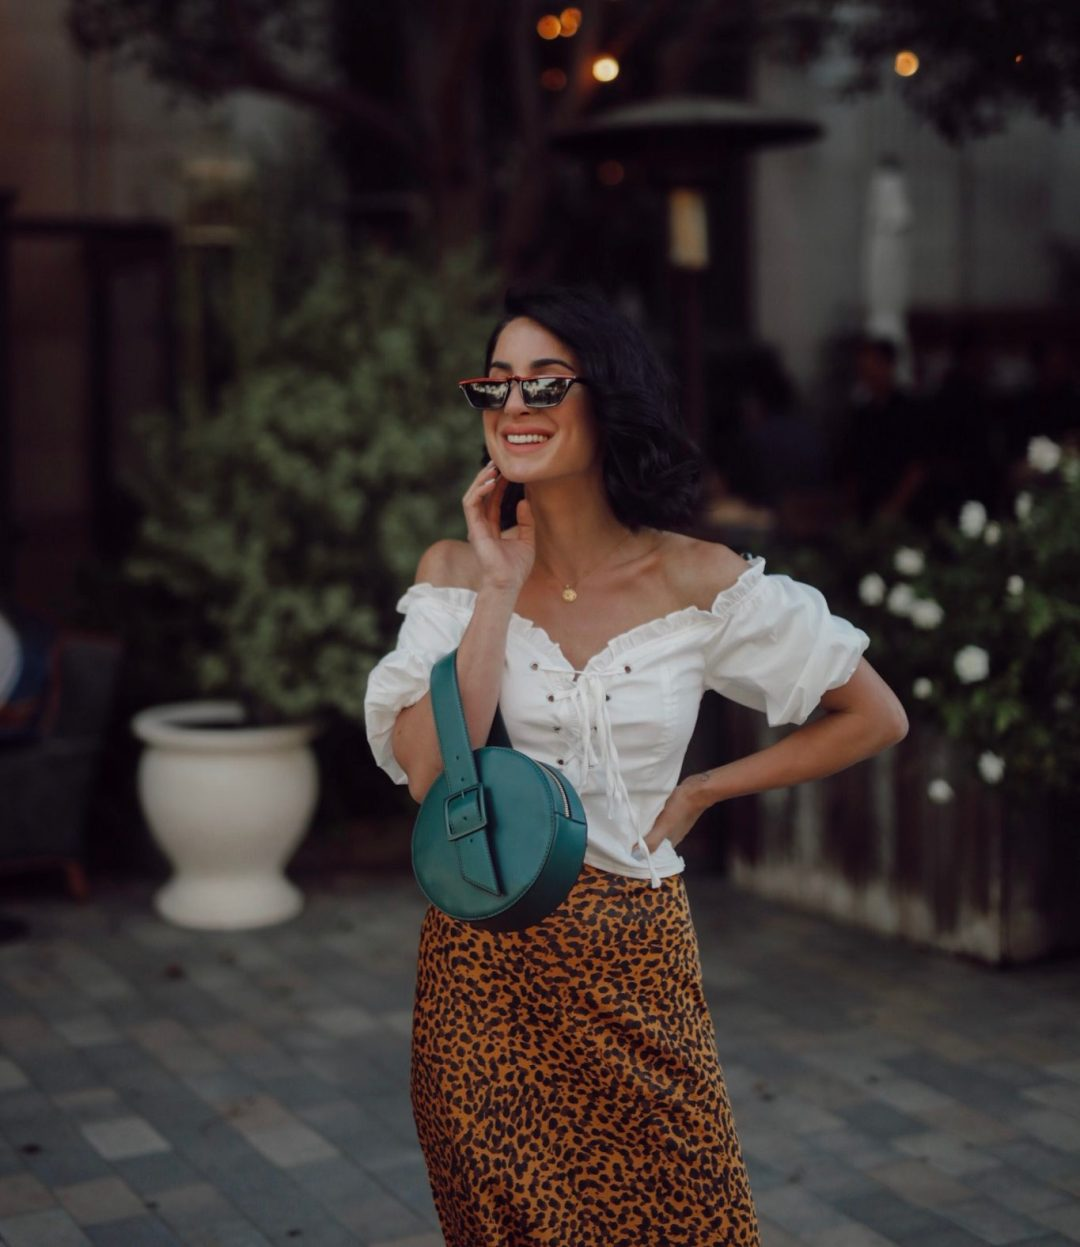 Leopard-Pieces-For-Your-Fall-Wardrobe